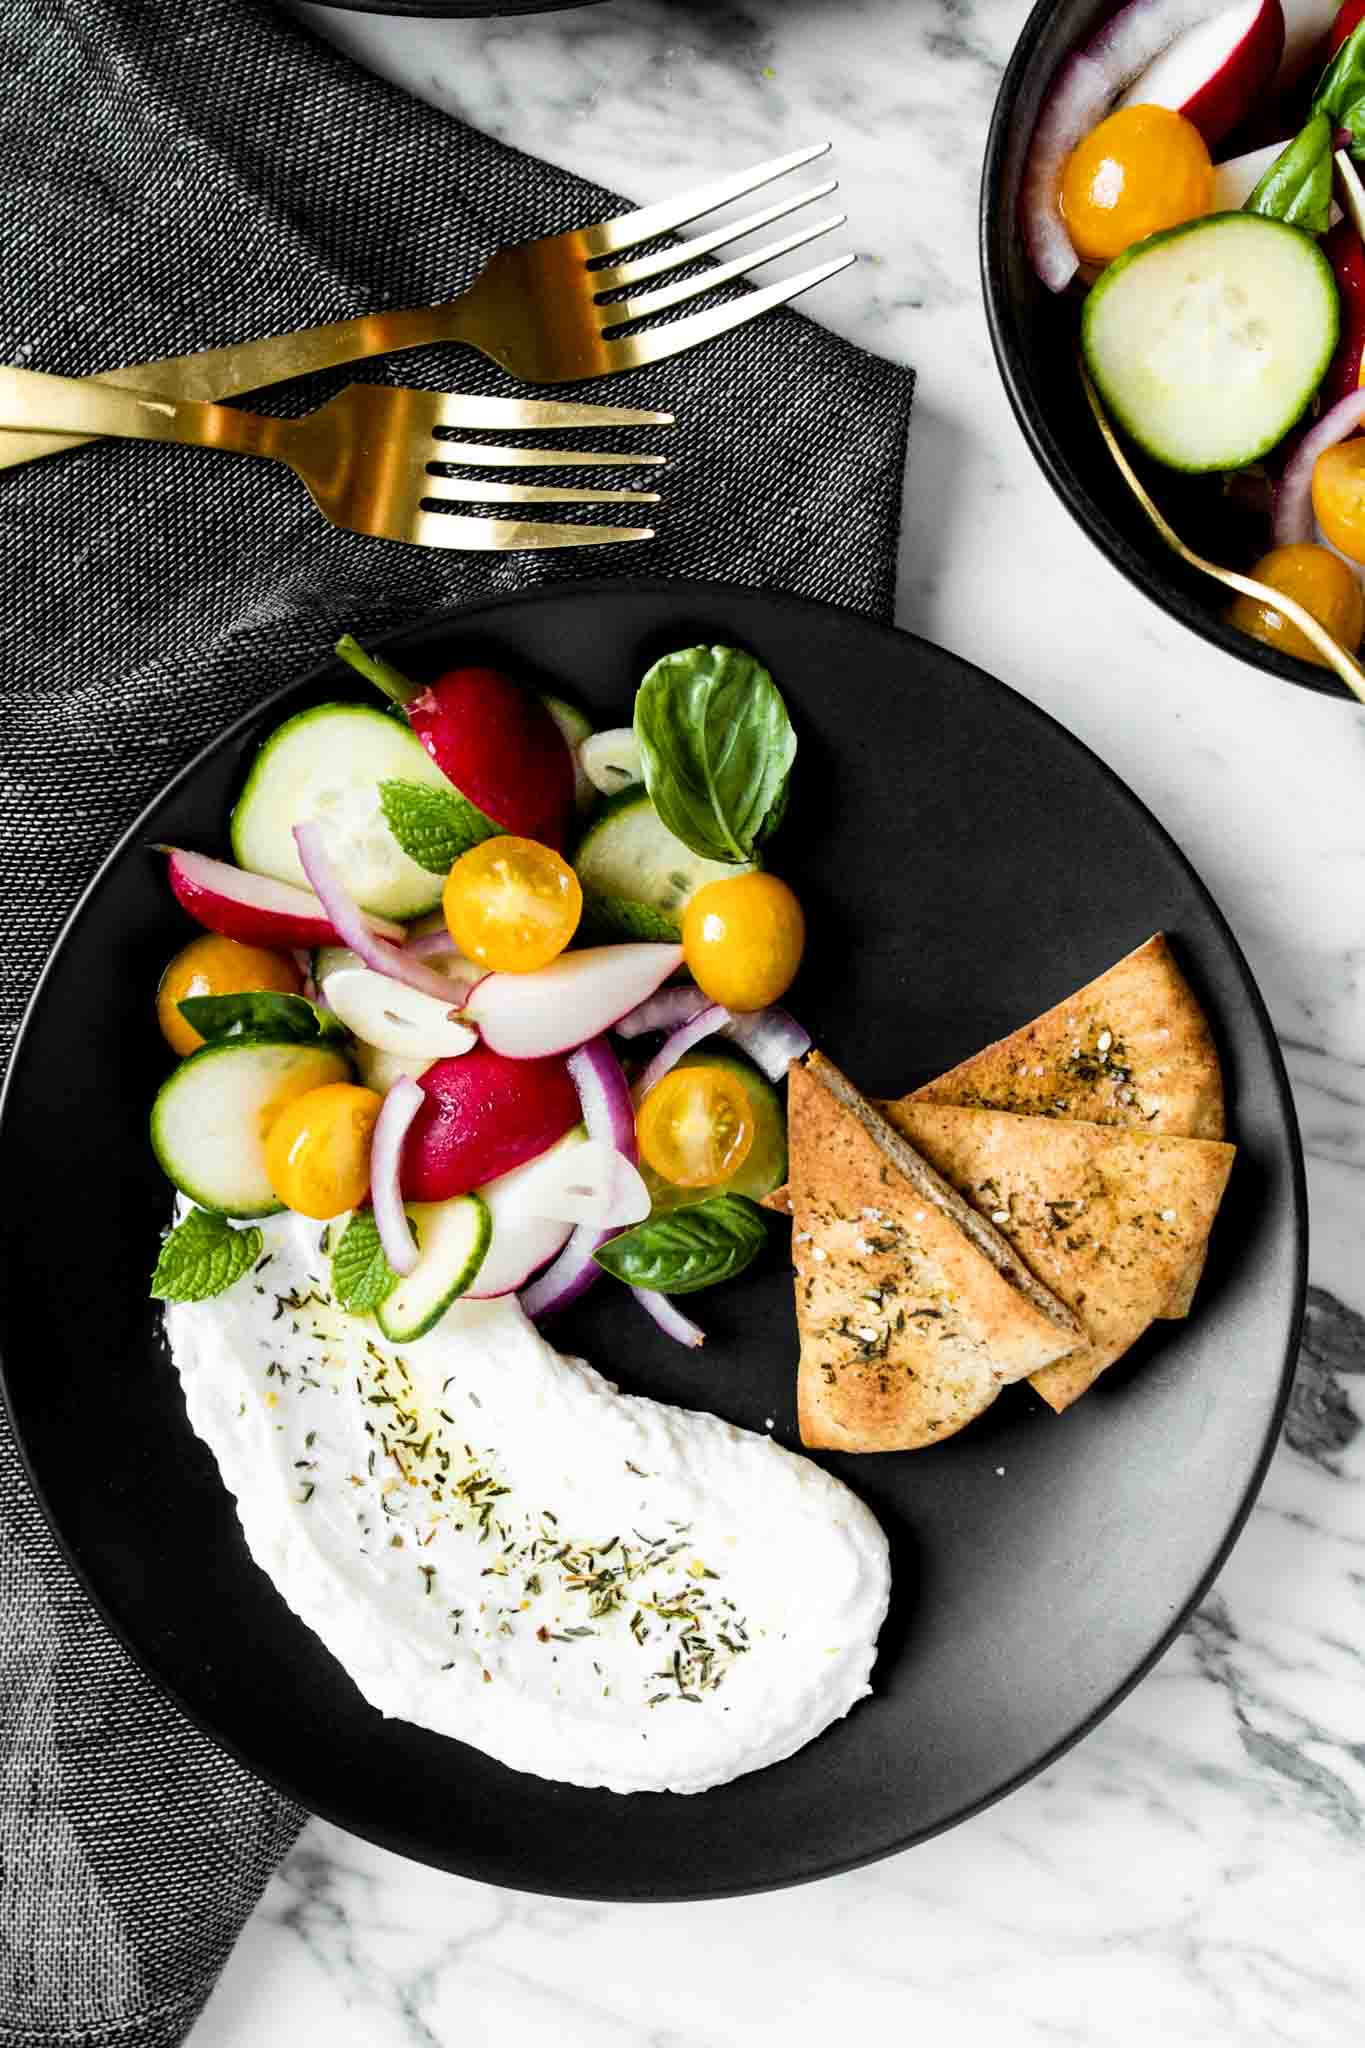 Photograph of homemade labneh on a plate with toasted pita bread and summer vegetables